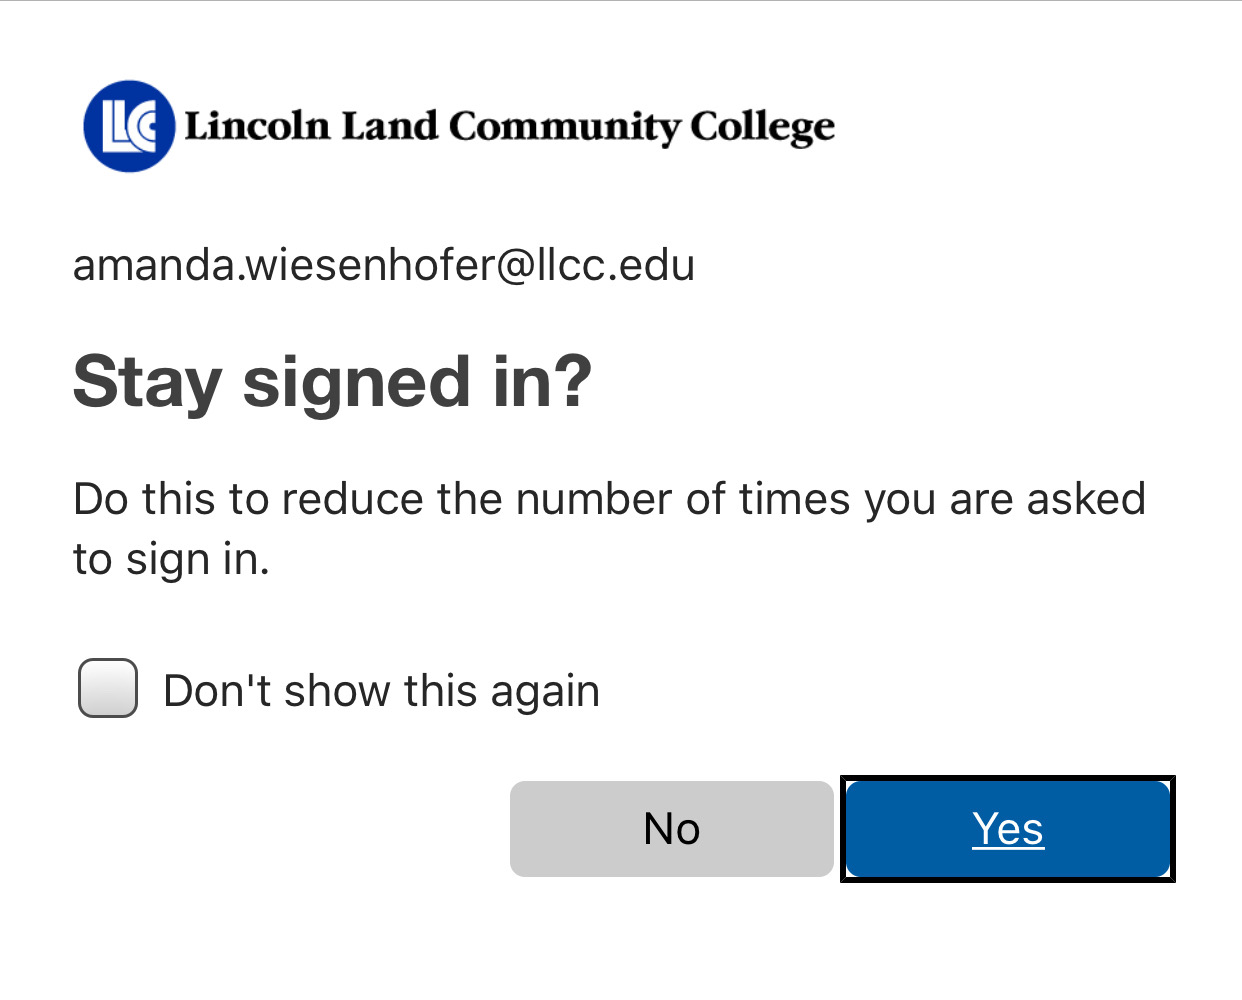 You can choose if you would like to stay signed in; click yes or no.